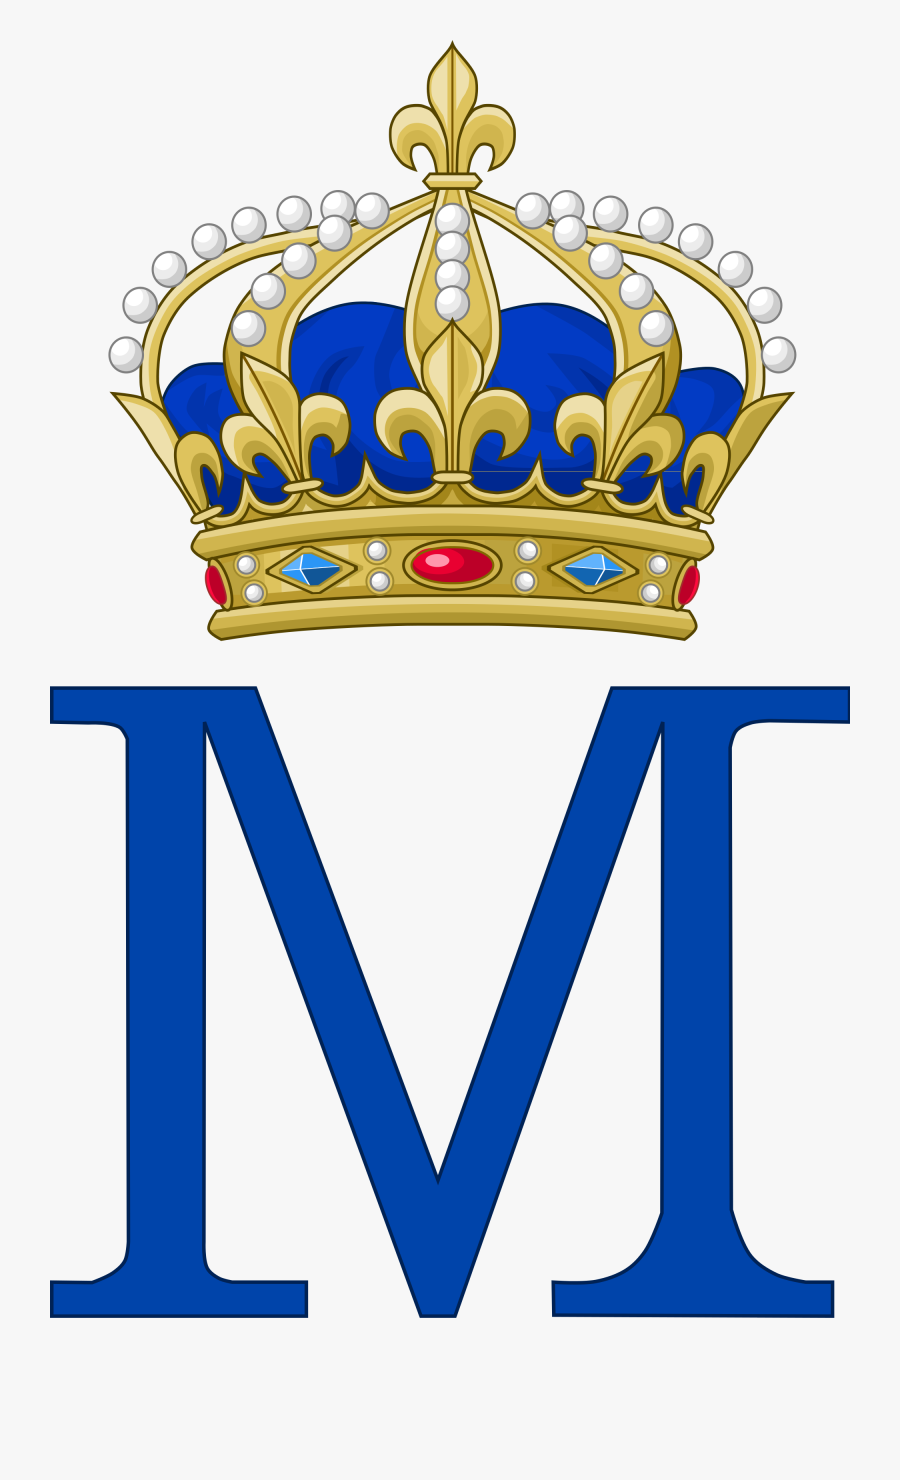 Mary Of Scots As - Royal Prince Crown Clipart, Transparent Clipart